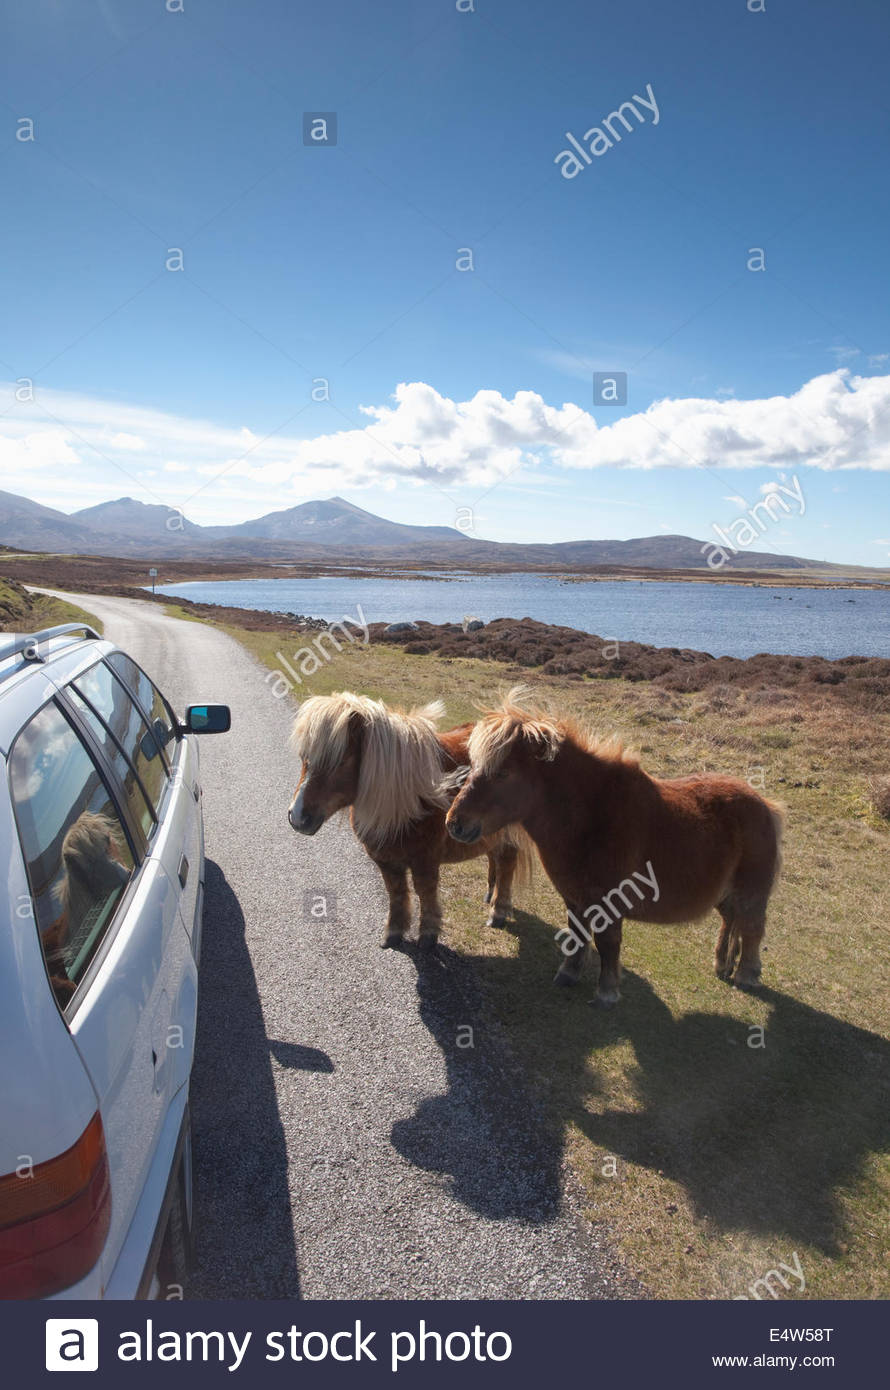 Ponies at Loch Druidibeg National Nature Reserve, Isle of South Uist, Outer Hebrides, Scotland. - Stock Image